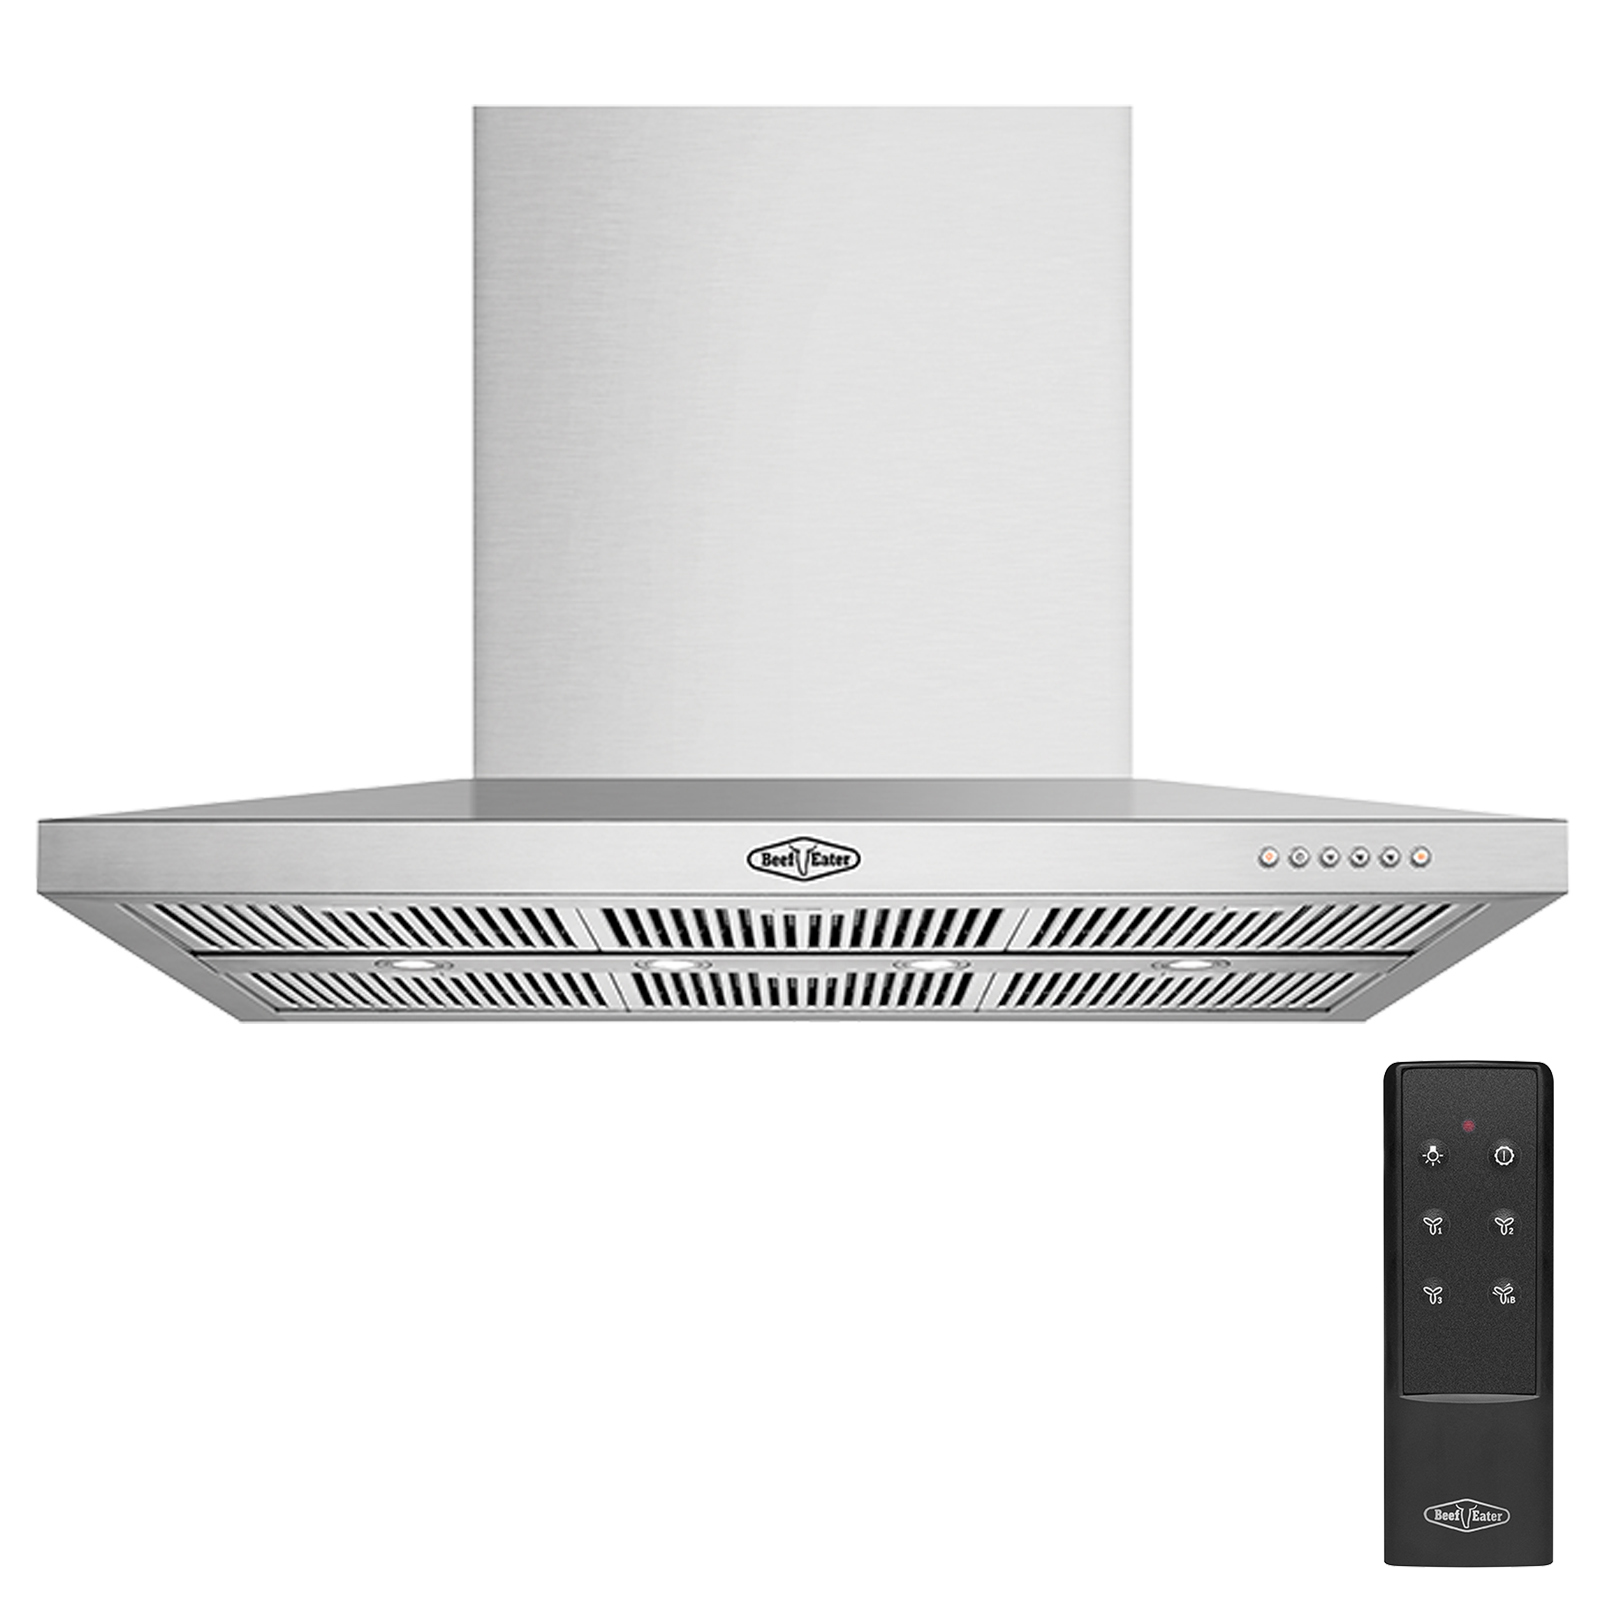 BEEFEATER SIGNATURE PROLINE OUTDOOR CANOPY HOOD- 1220mm - Range hood